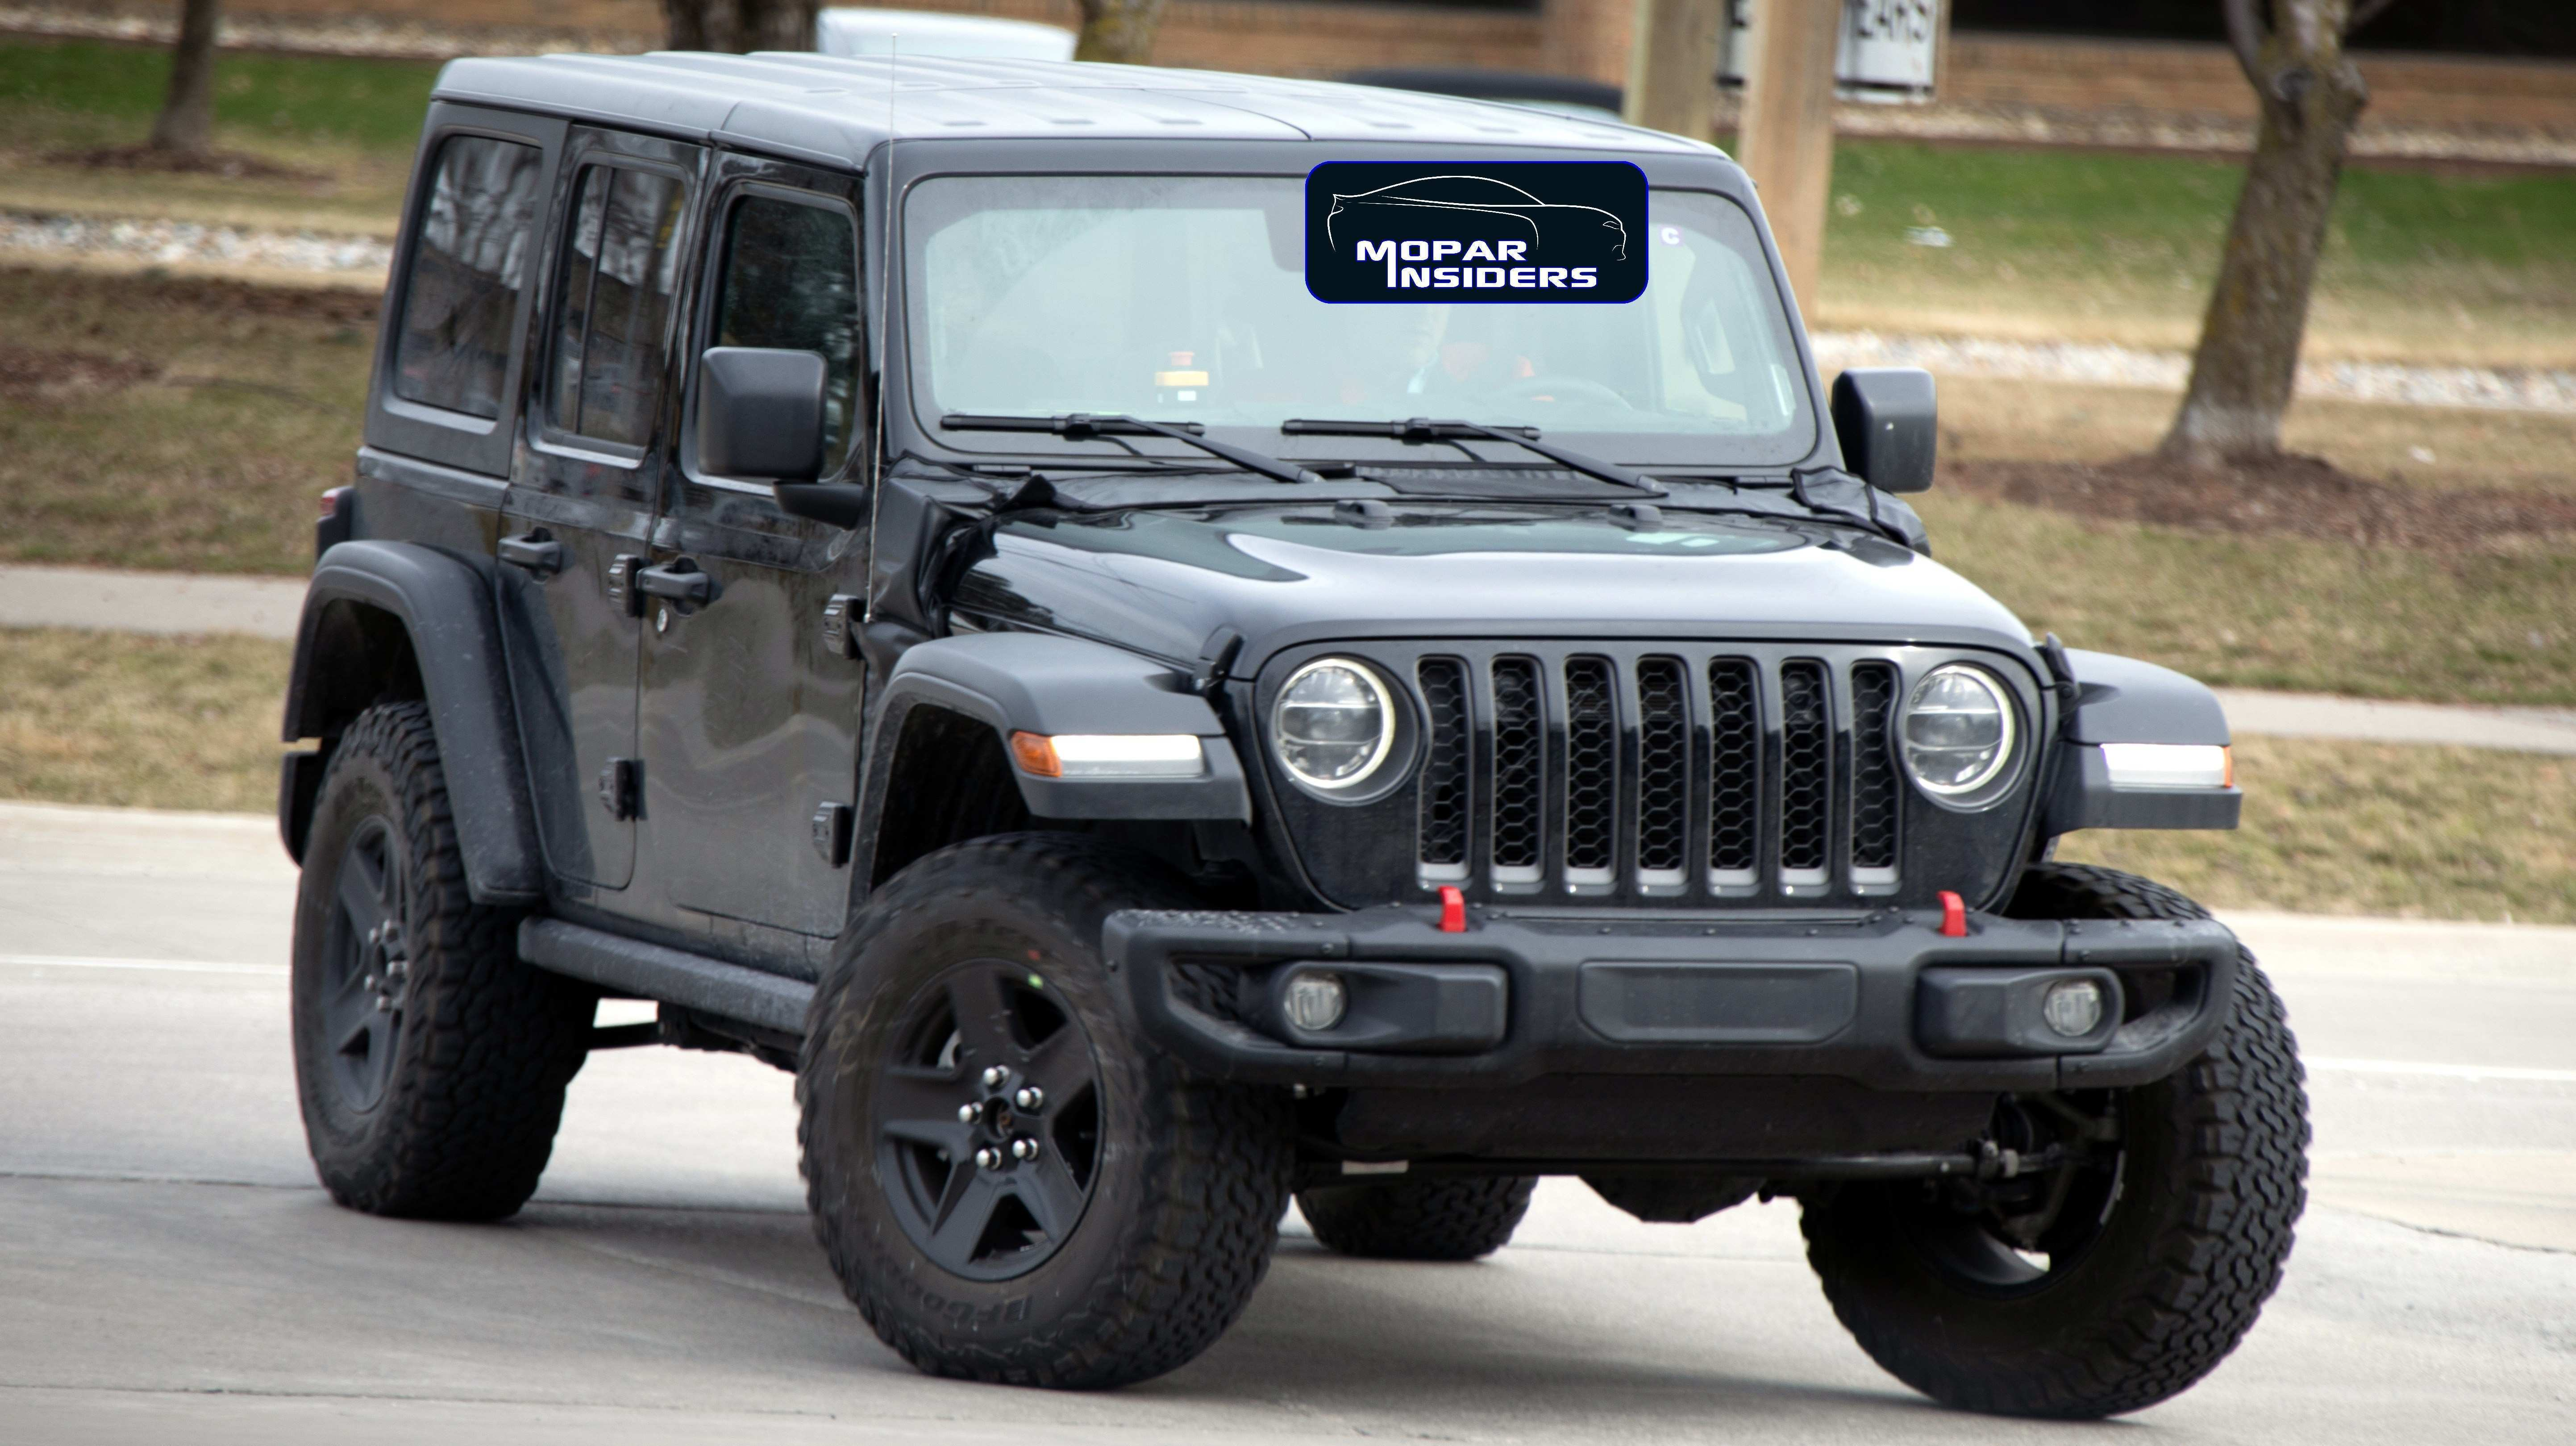 94 The Best 2020 Jeep Wrangler Updates Release Date